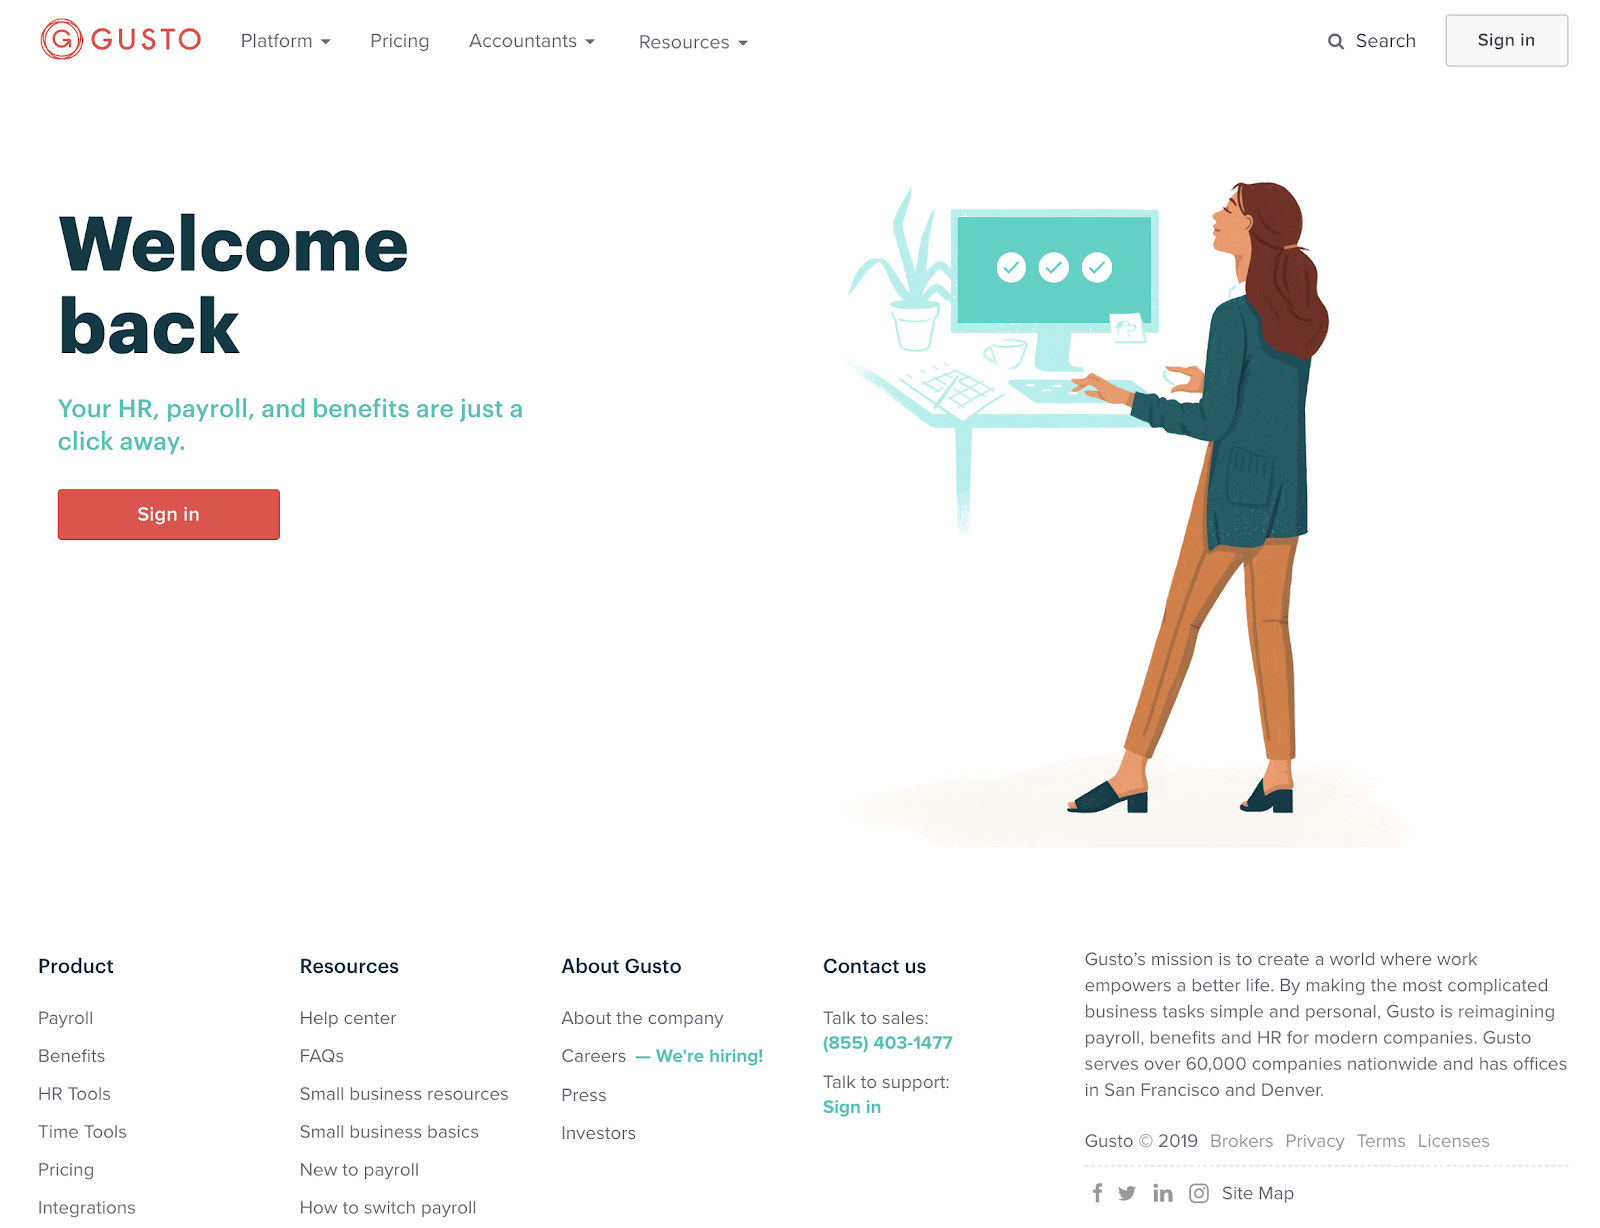 this is a screenshot image of hr platform gusto's marketing homepage. on the left is an illustration of a woman at a desktop computer, on the right is a large header that says welcome back and a sign in button